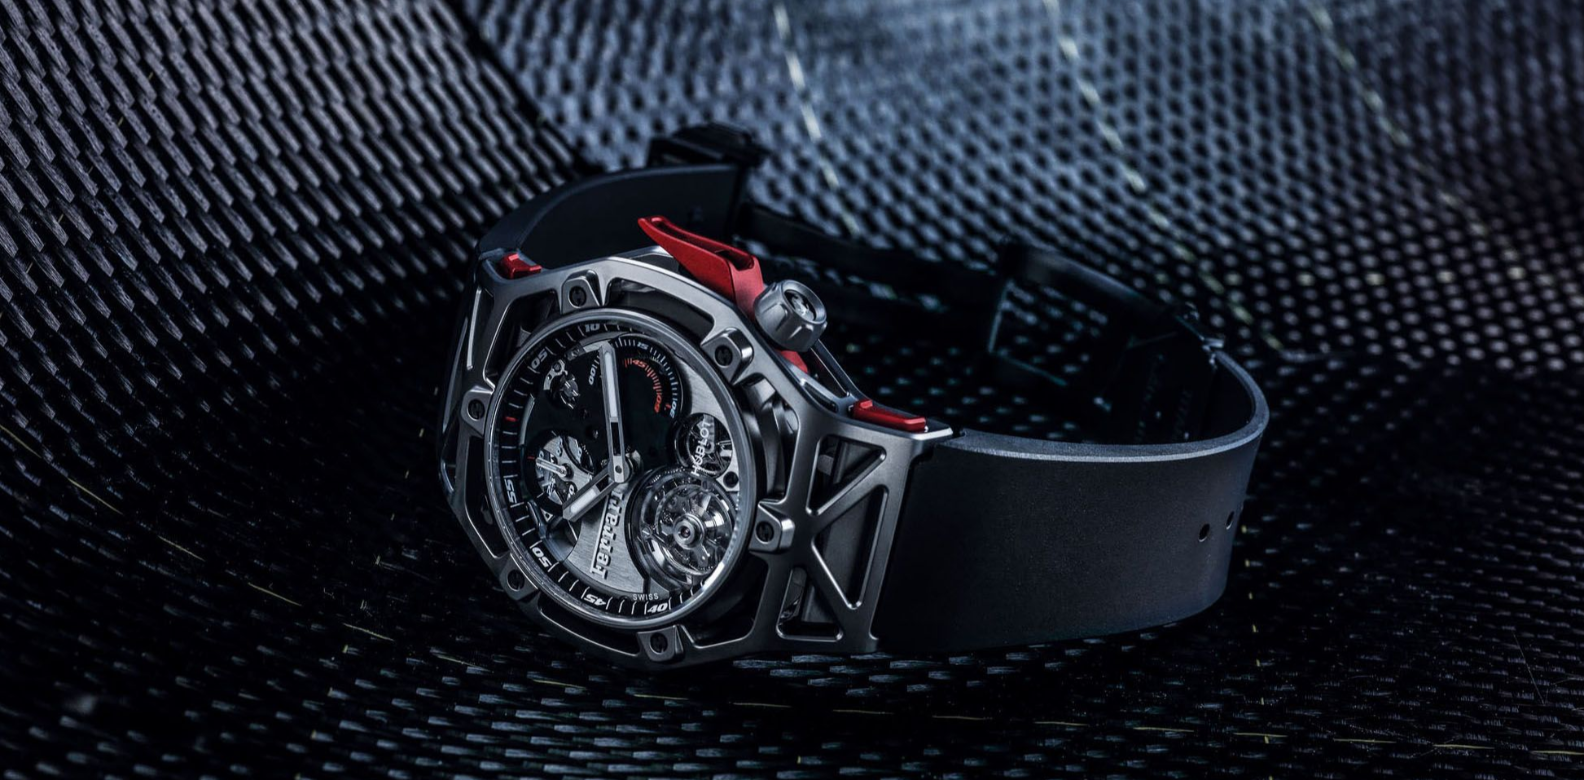 Launched in 2017 as part of the 70th-anniversary celebration of Ferrari—one of Hublot's closest partners—the Techframe Ferrari 70 Years Tourbillon Chronograph comes in one version that uses polyether ether ketone carbon (Peek), a multilayer hypoallergenic material made from extremely long carbon fibres. Its molecular structure makes Peek extremely durable and reliable, boasting higher average strength than regular composites